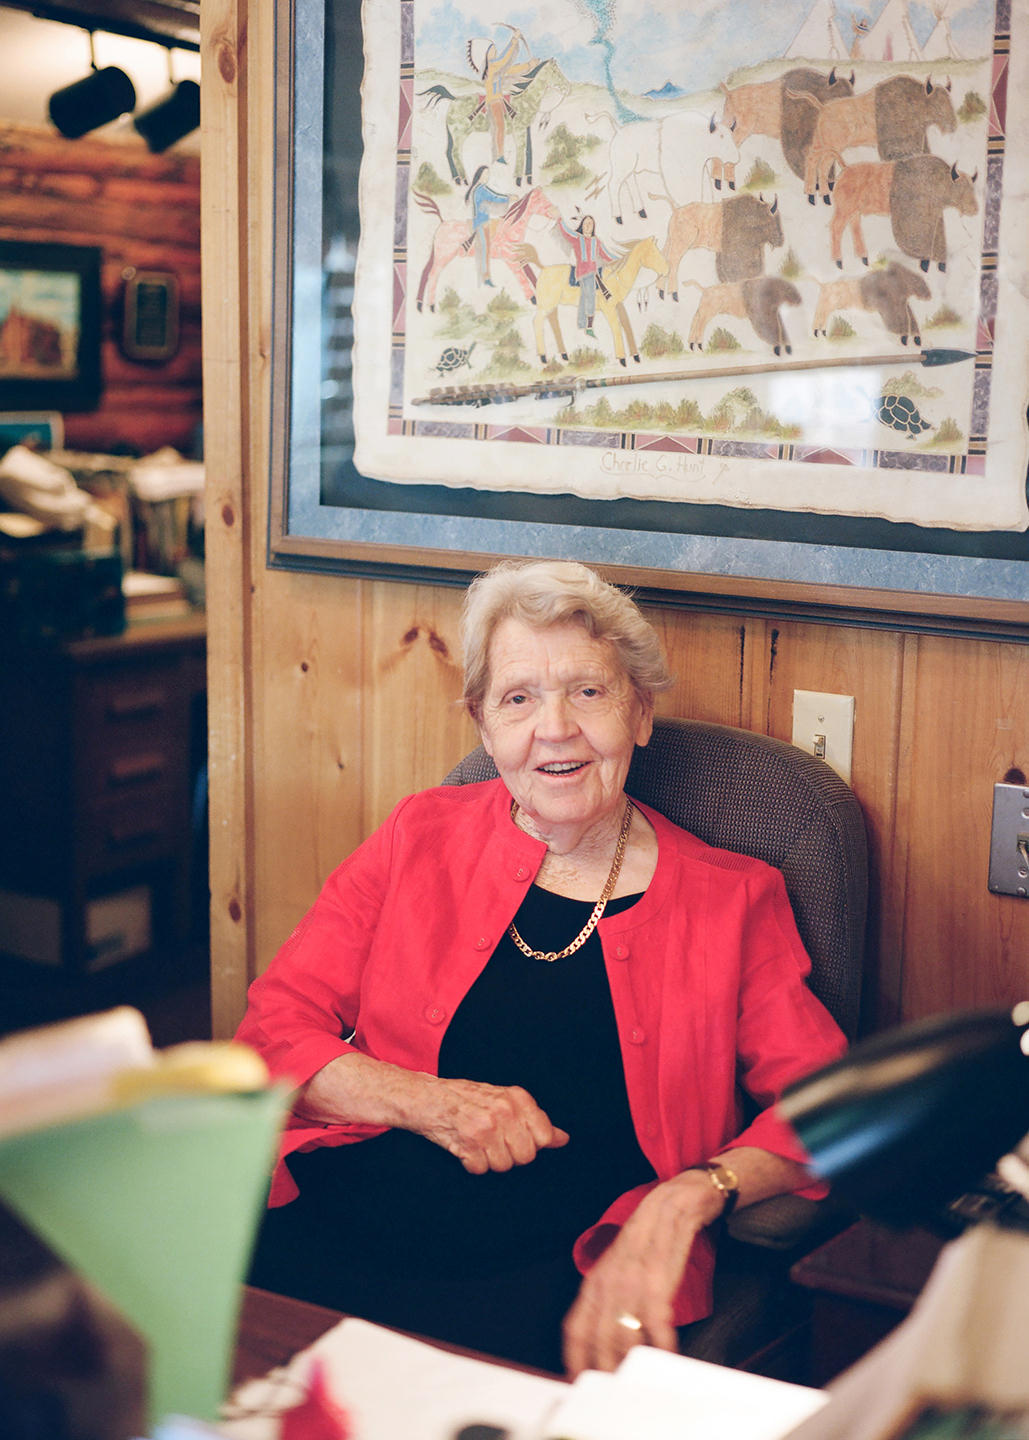 Clarene working at her flagship motel, The Antler, in Jackson, Wyoming.